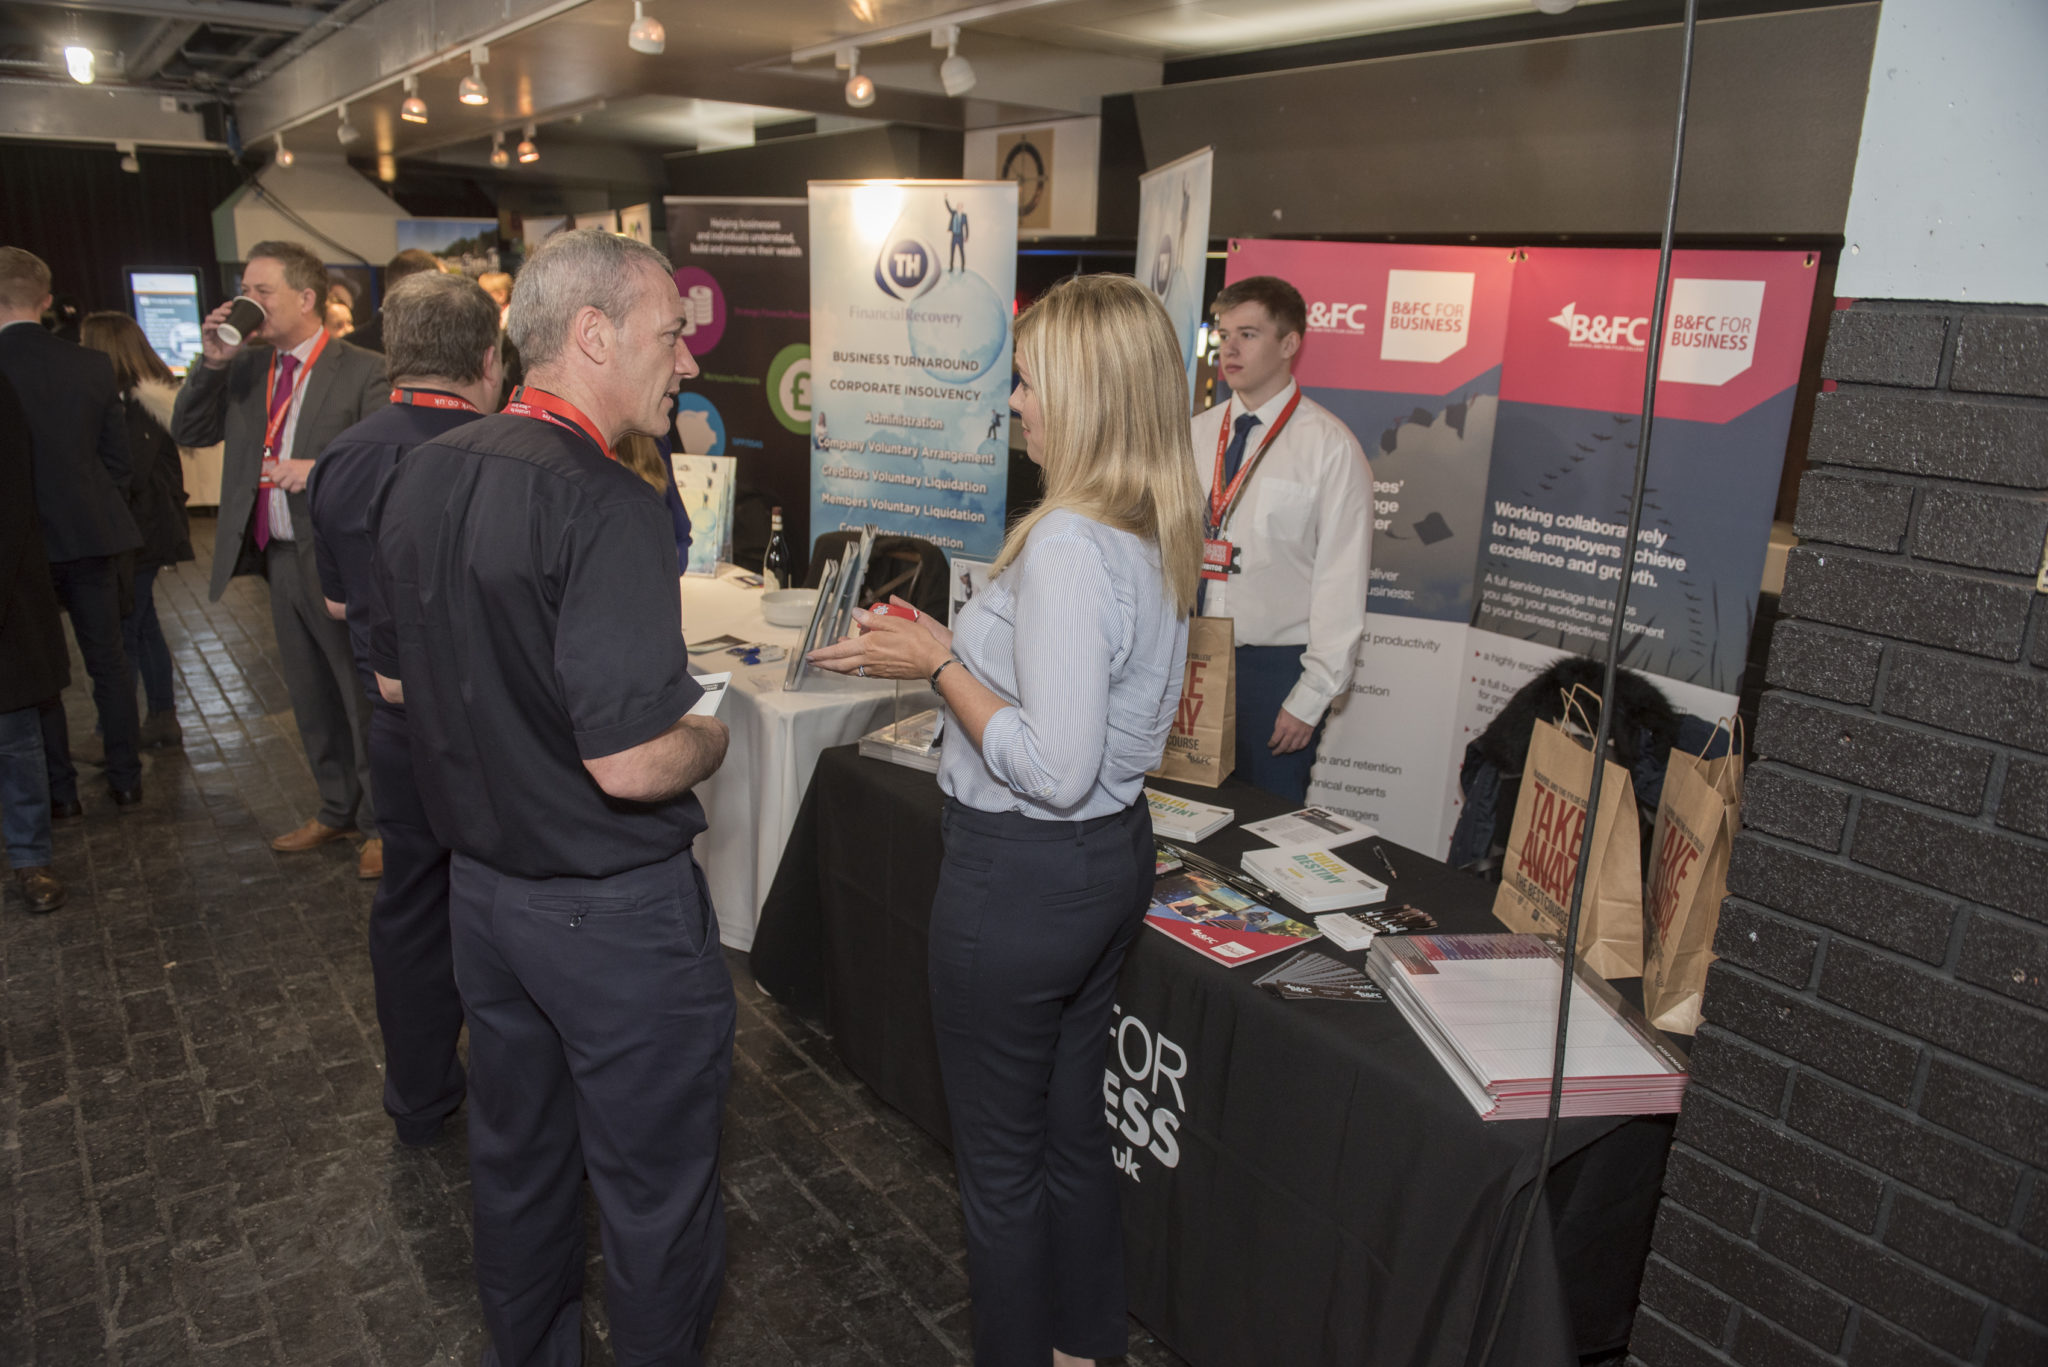 Expo Exhibition Stands Jobs : Shout expo exhibitions in lancashire merseyside and greater